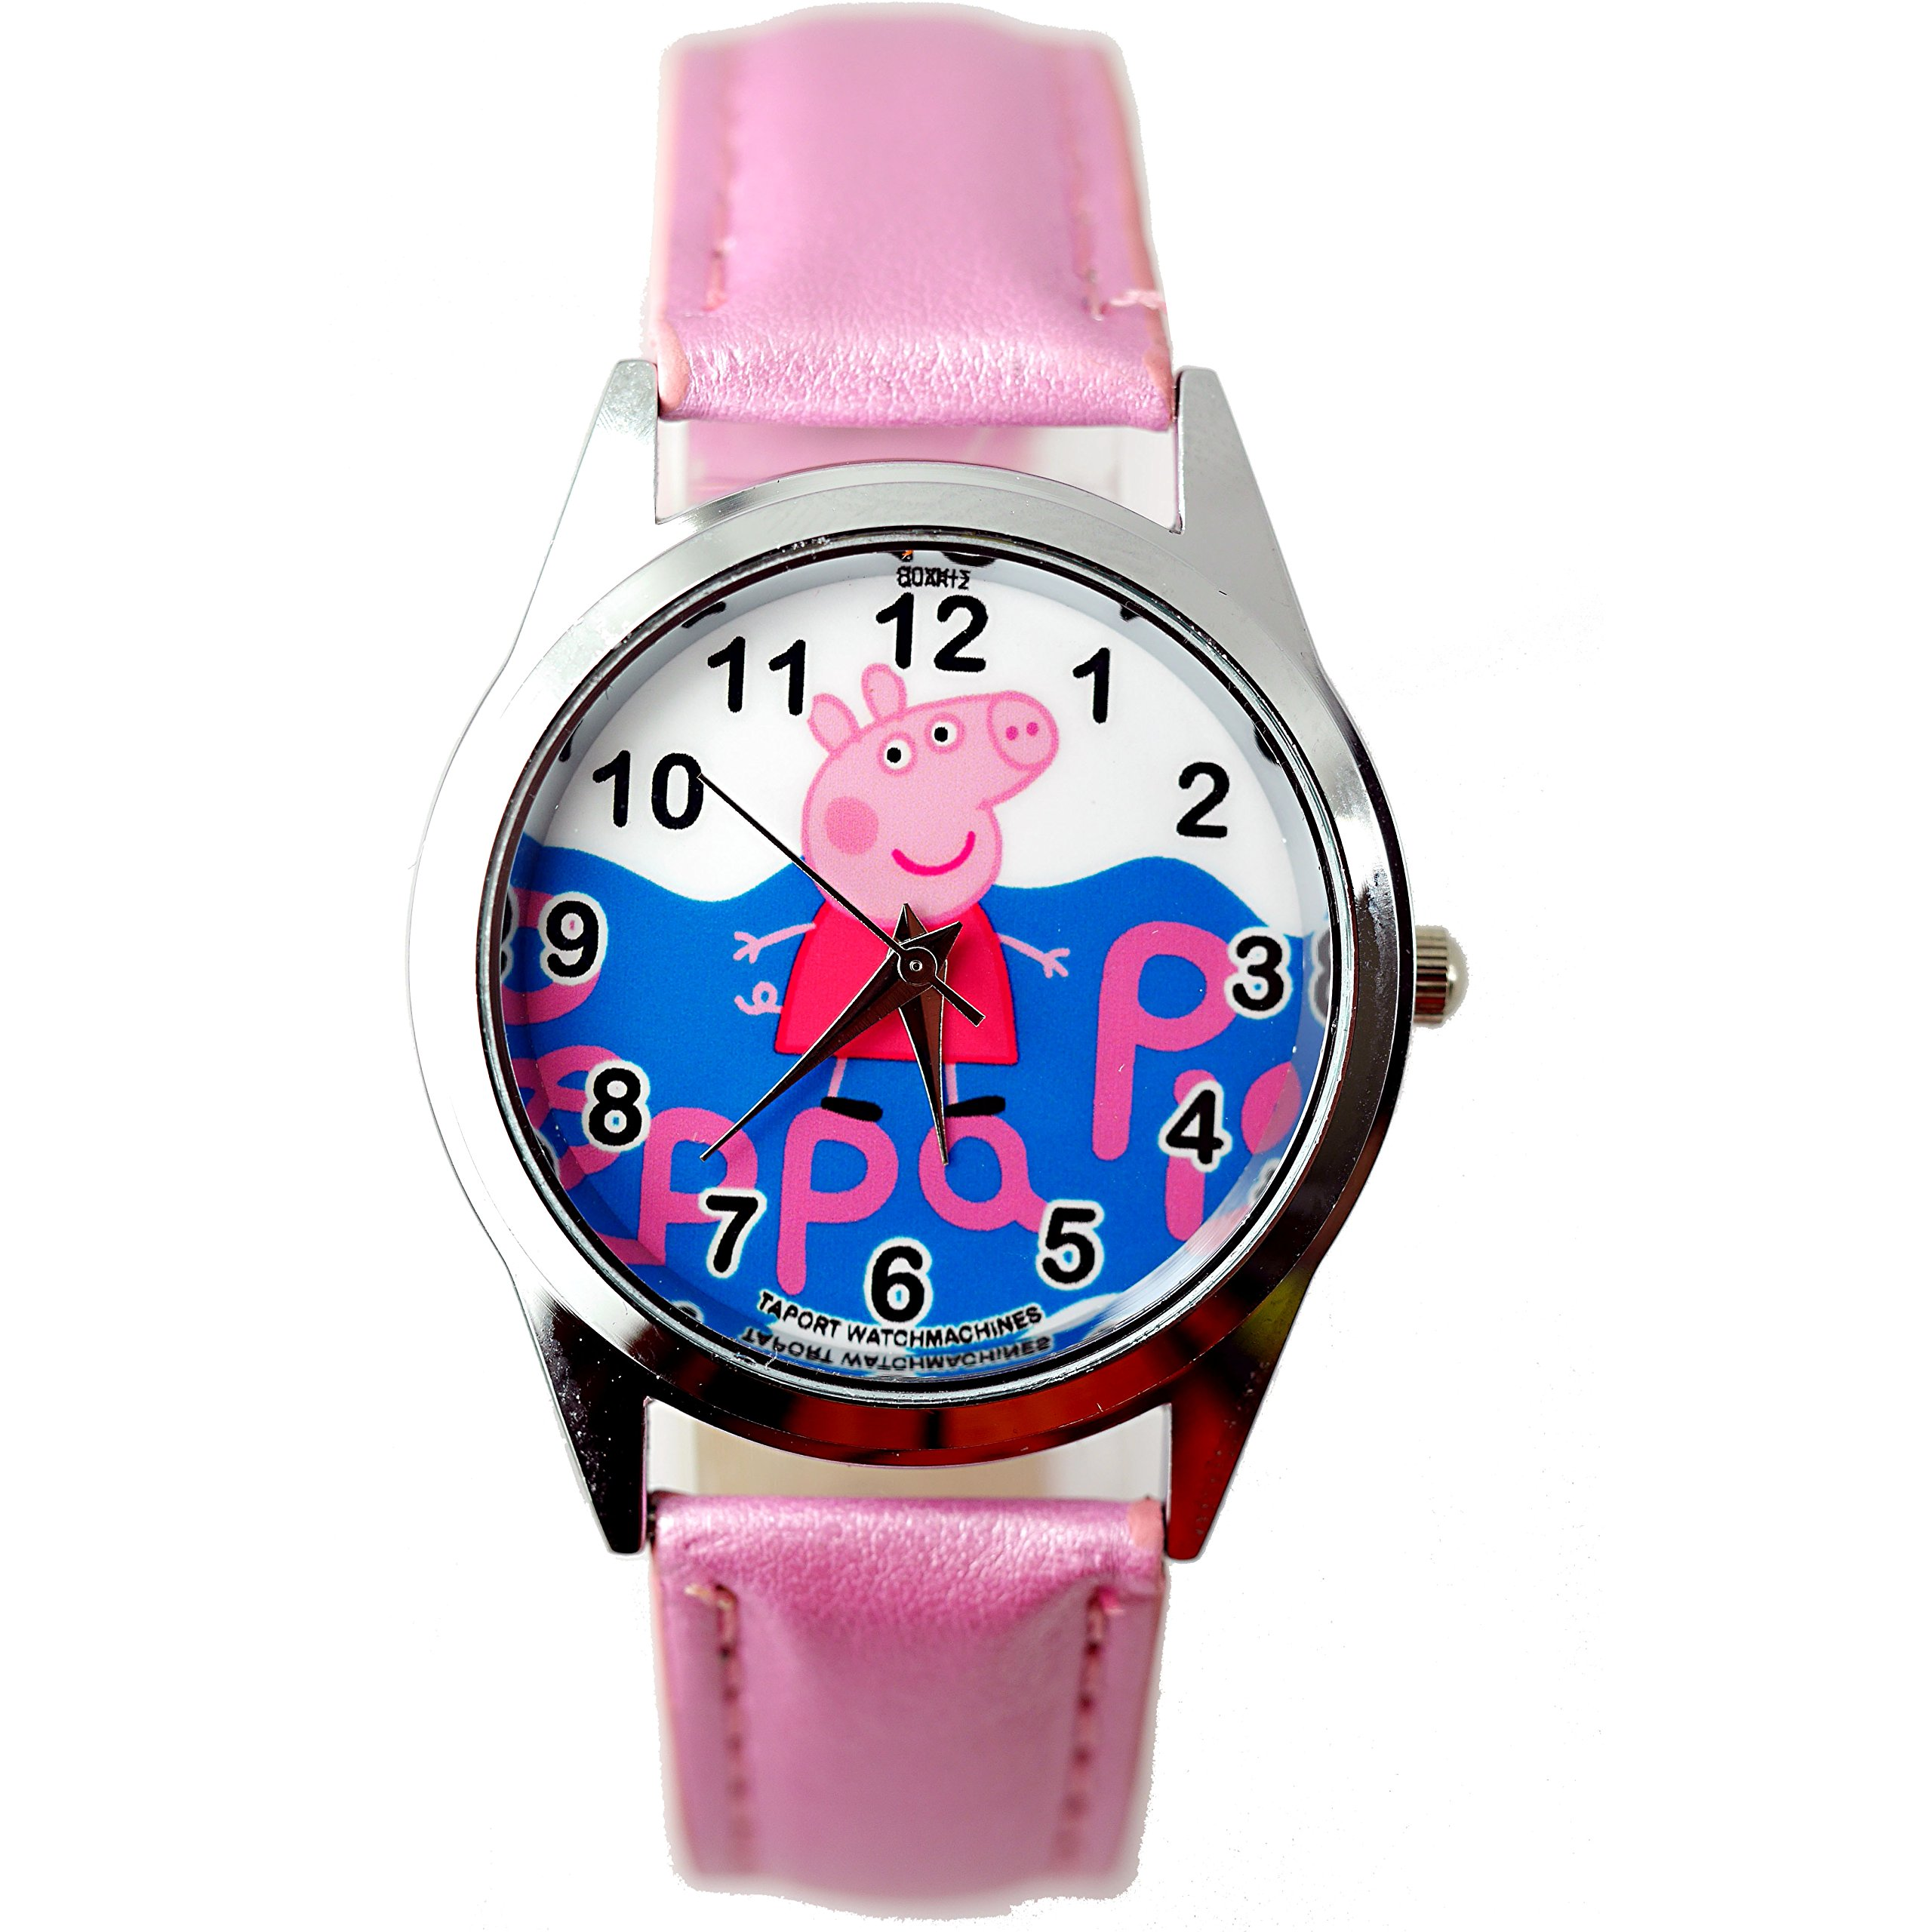 TAPORT® PEPPA PIG Quartz Watch PINK Leather Band +FREE SPARE BATTERY+FREE GIFT BAG